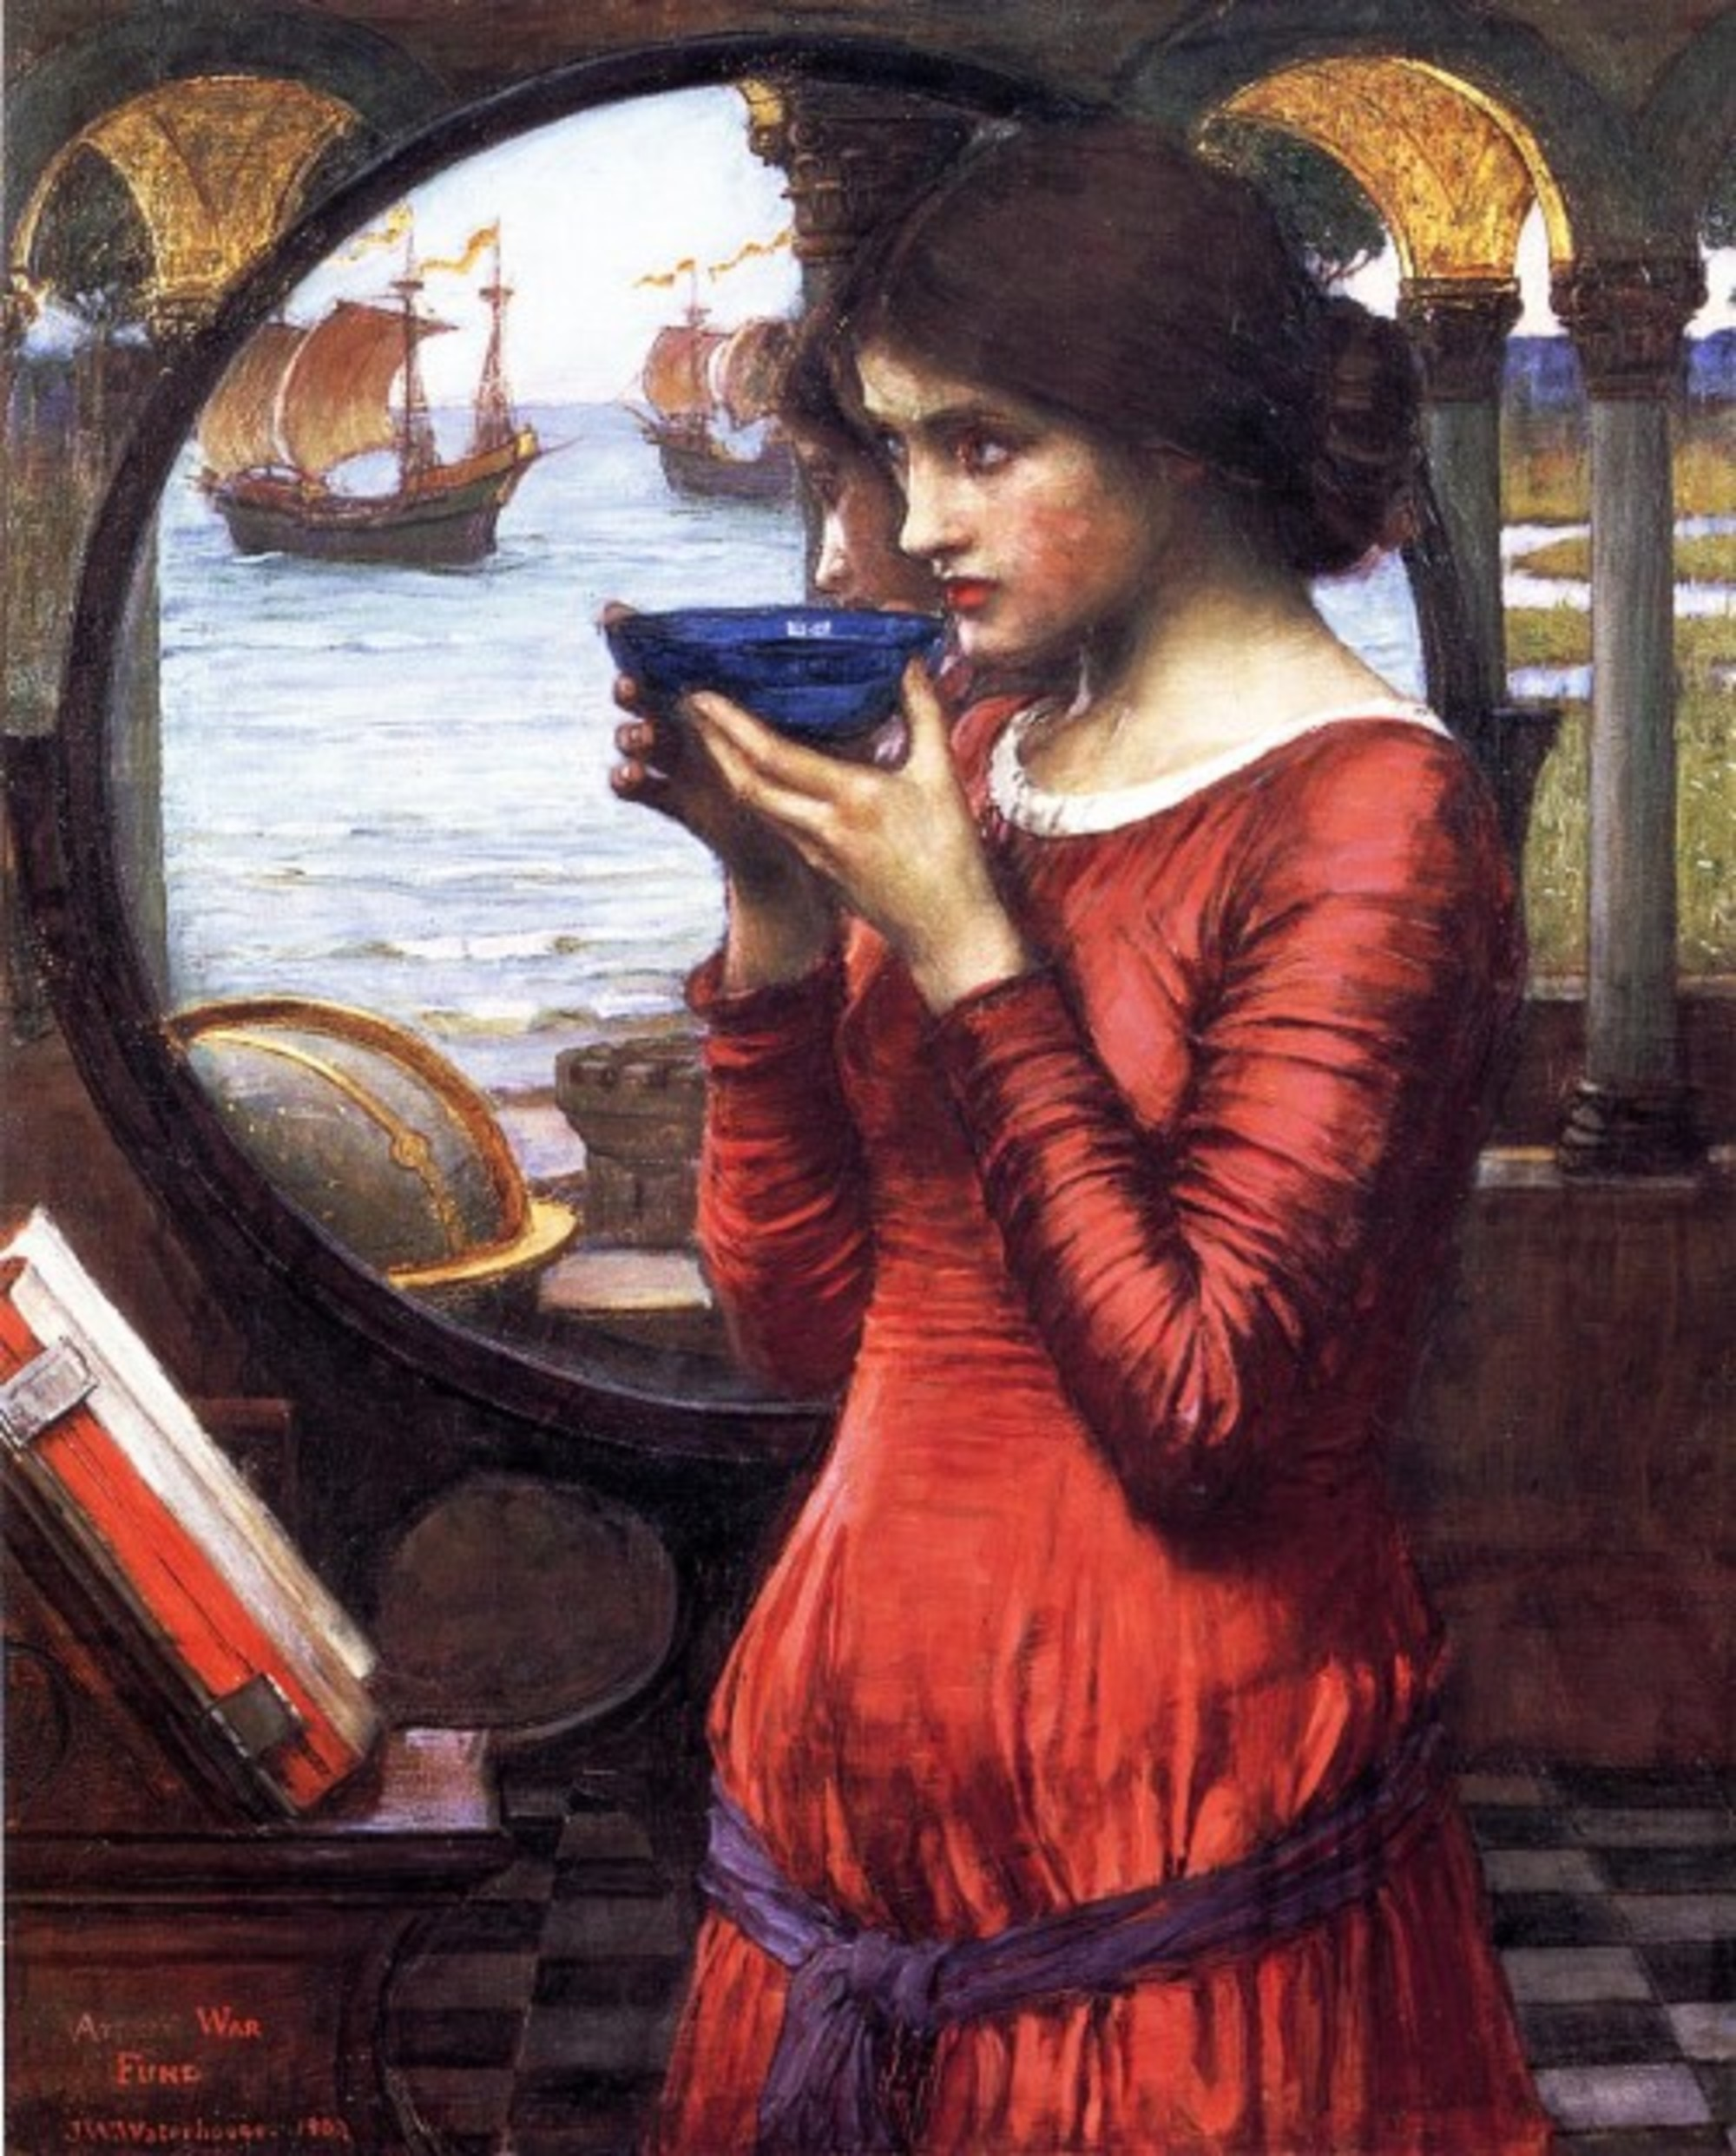 Destiny_-_John_William_Waterhouse.jpg